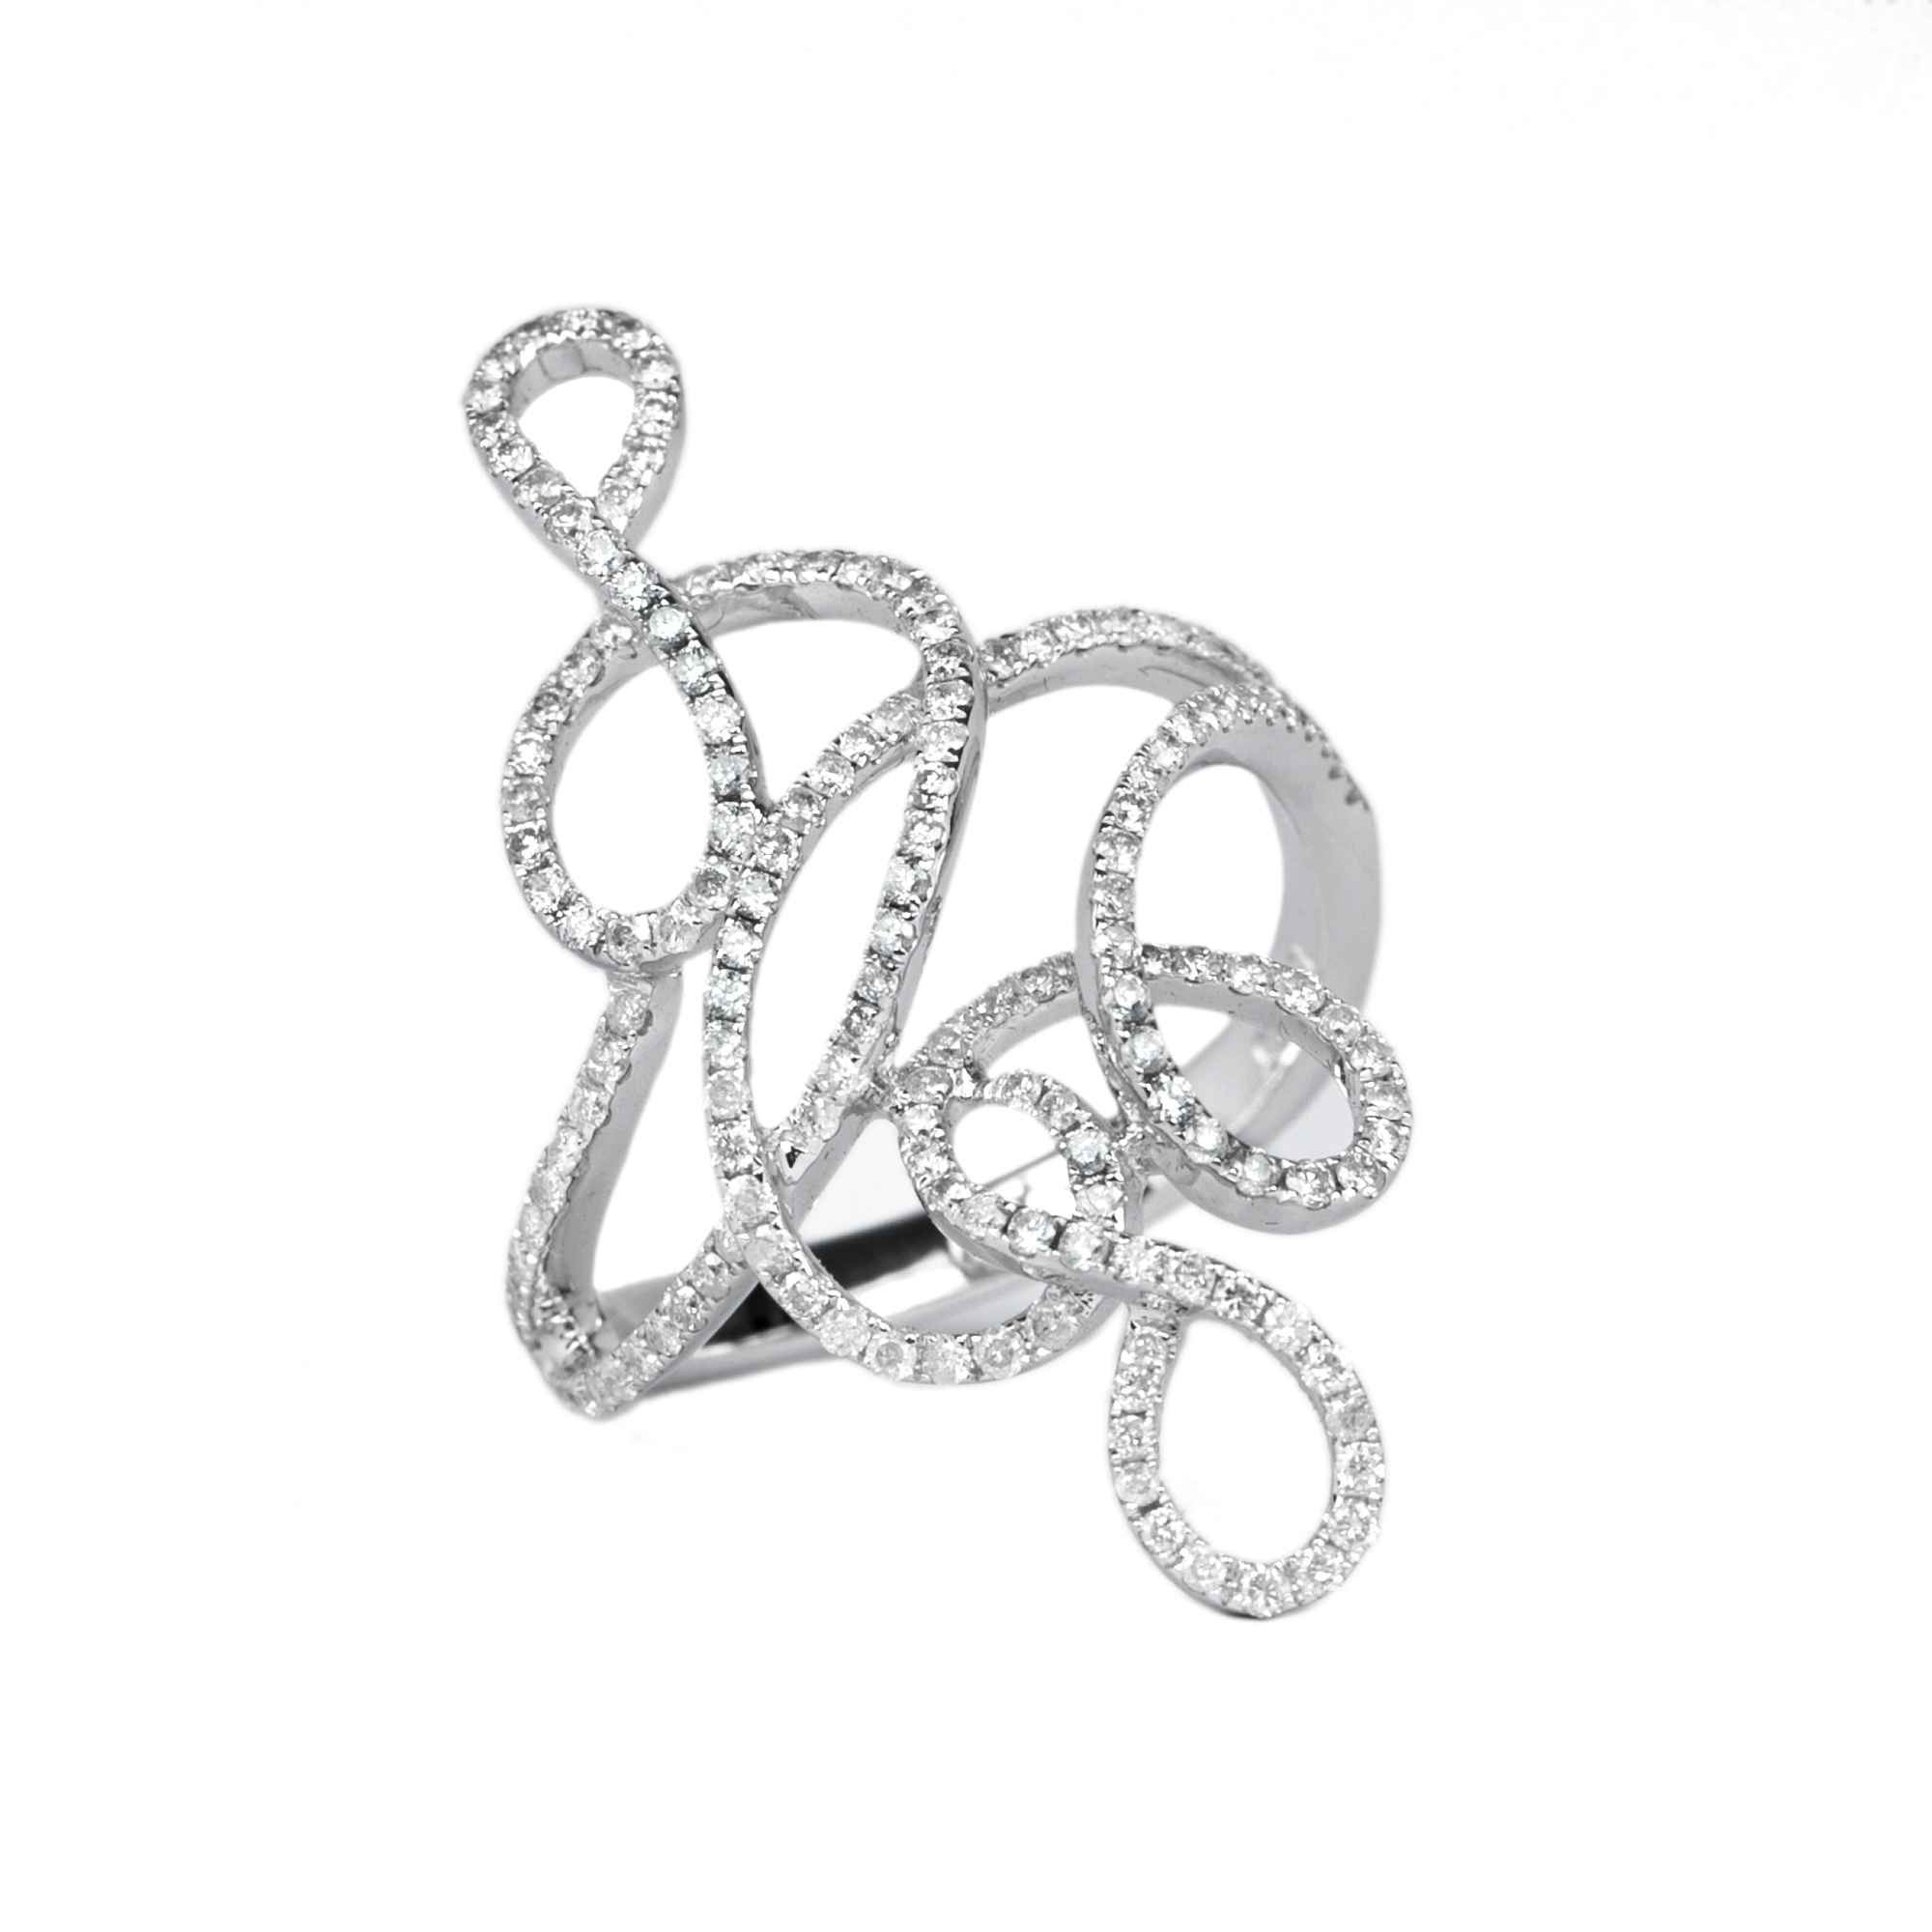 3/4 CT Pave Set Diamond Cocktail Ring for Women